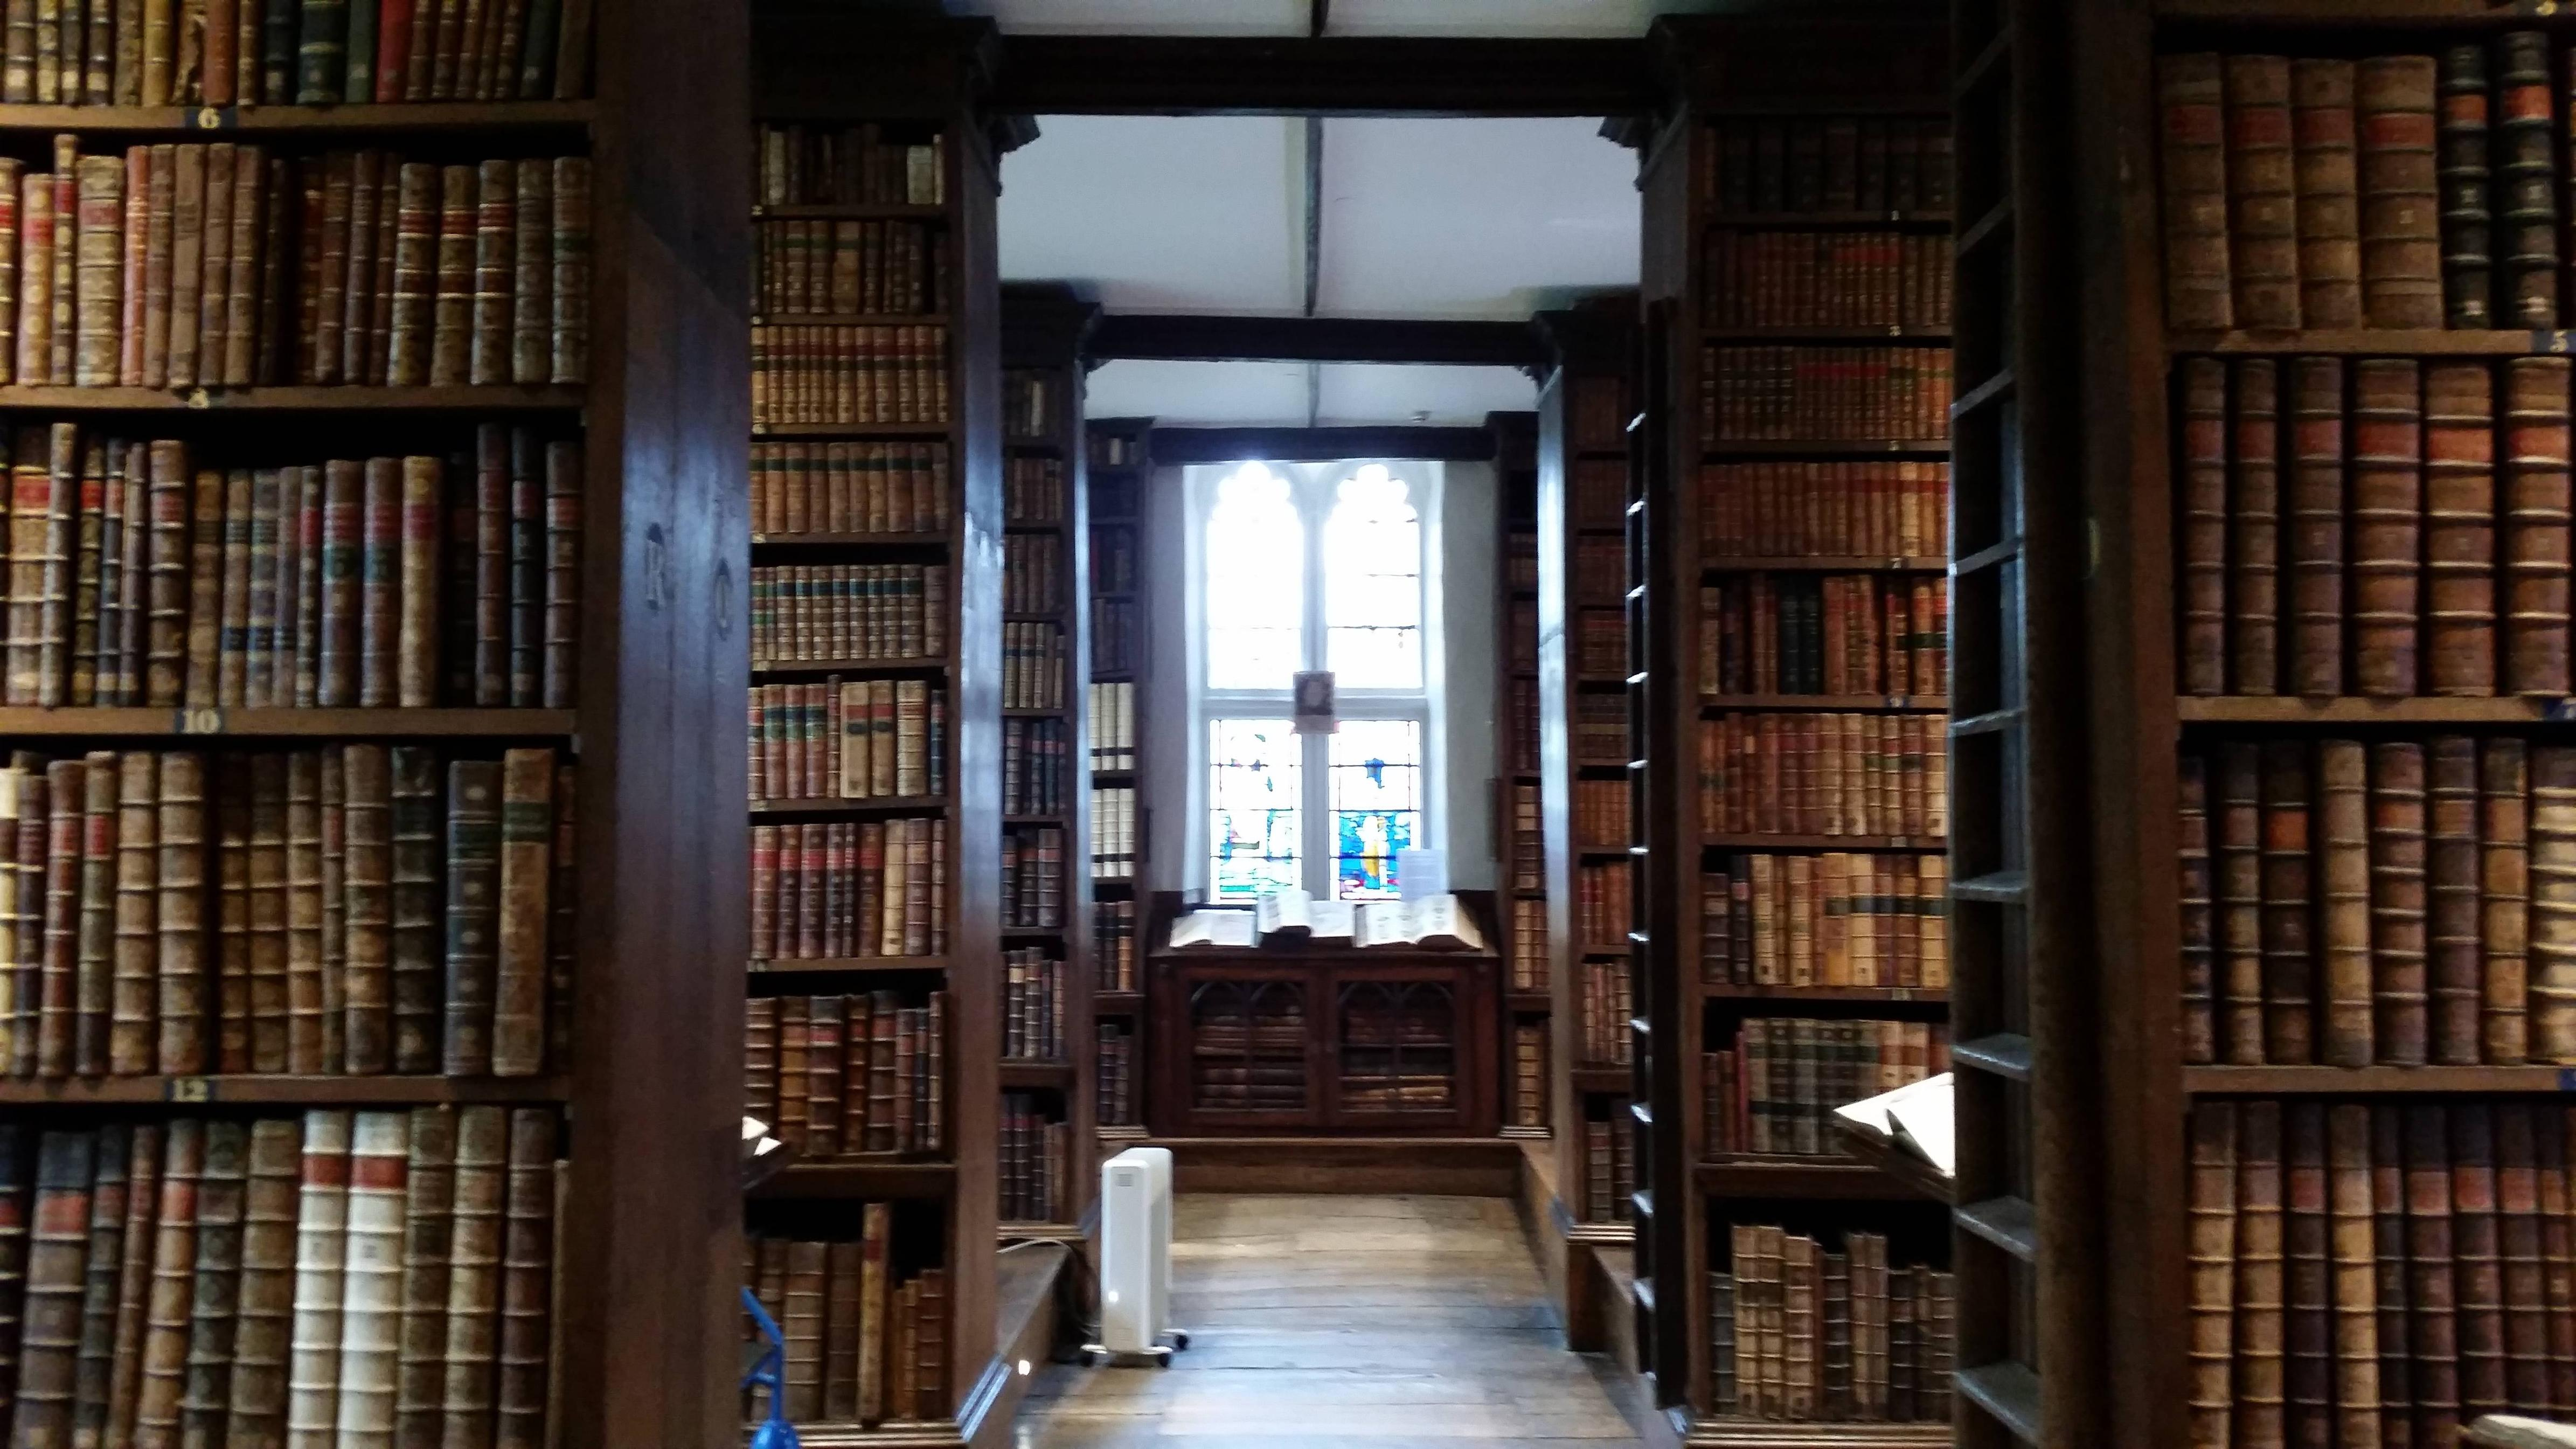 A library at the University of Oxford